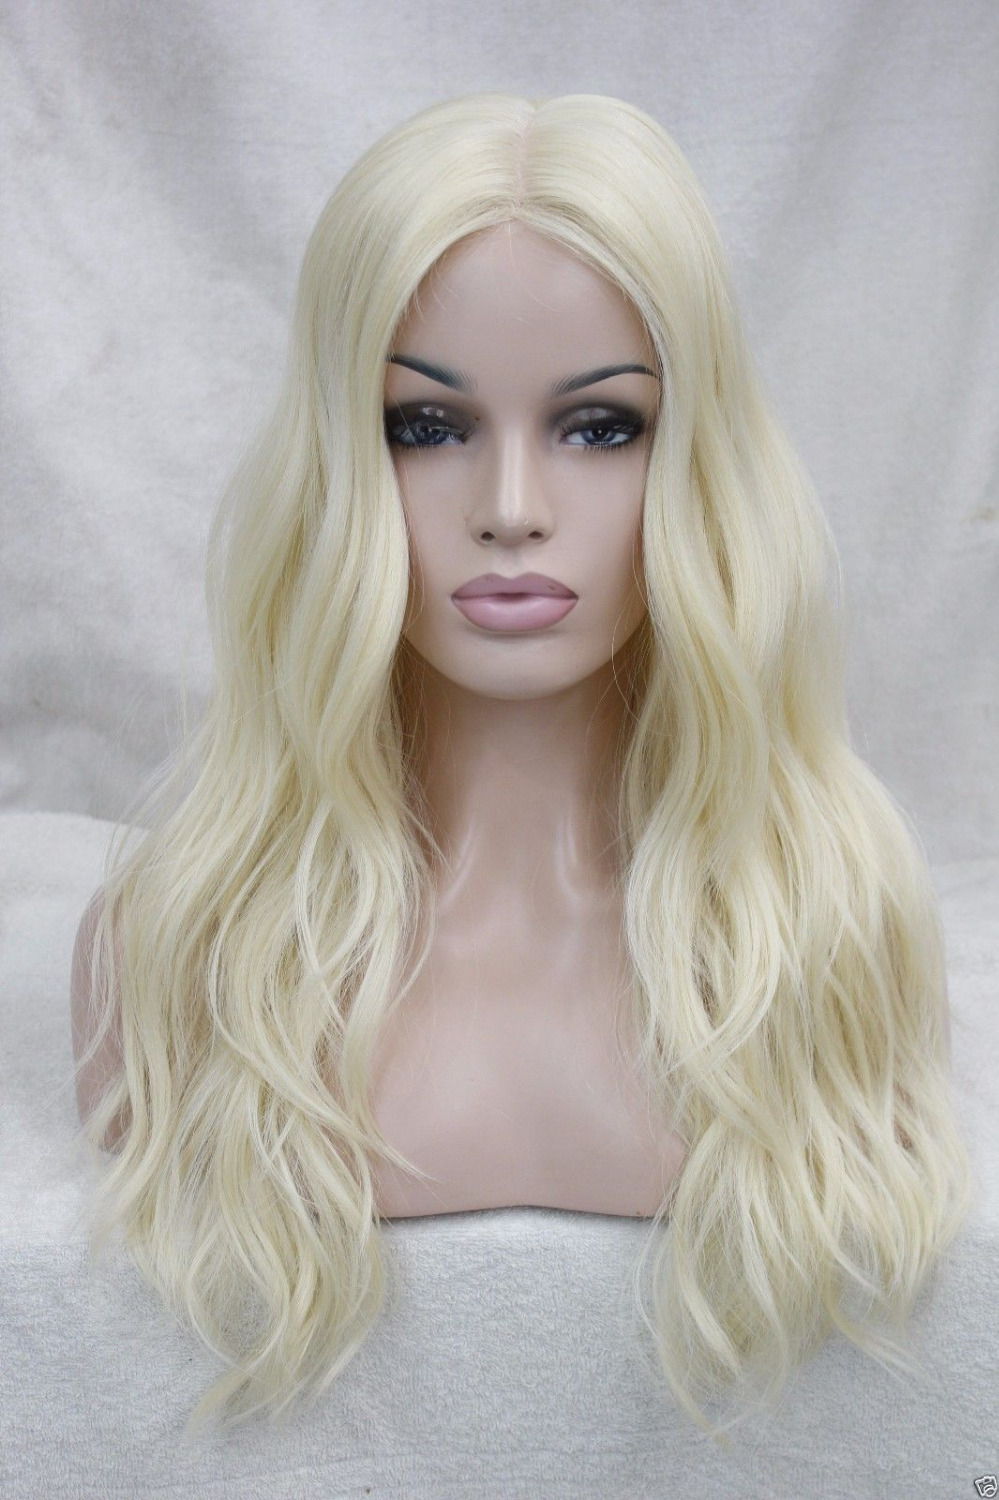 004284 Fashion Pale Blonde Vavy Hi-Quality Heat Friendly Hair Small lace front long Wig